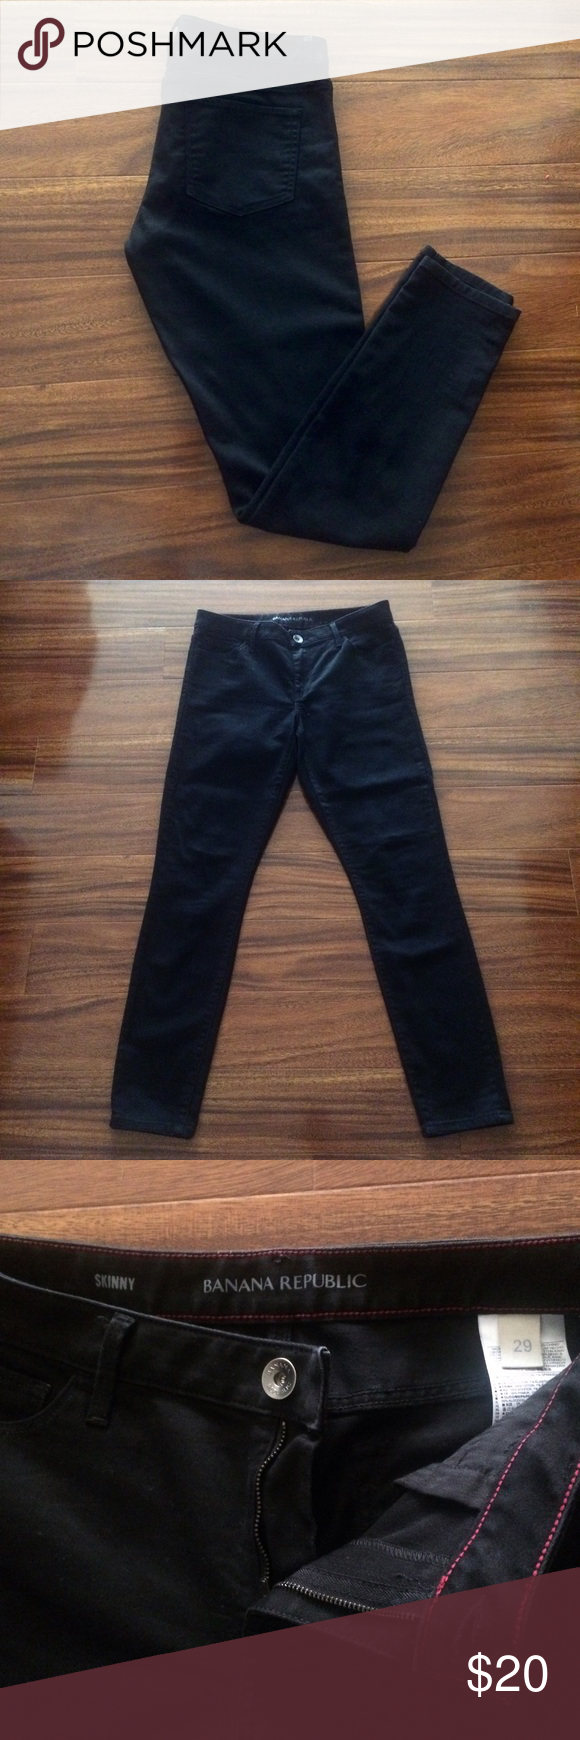 Banana Republic Skinny Jeans Black skinny jeans from Banana Republic, Perfect condition, worn once or twice and decided they were too big. Size 29. ✨ Banana Republic Jeans Skinny